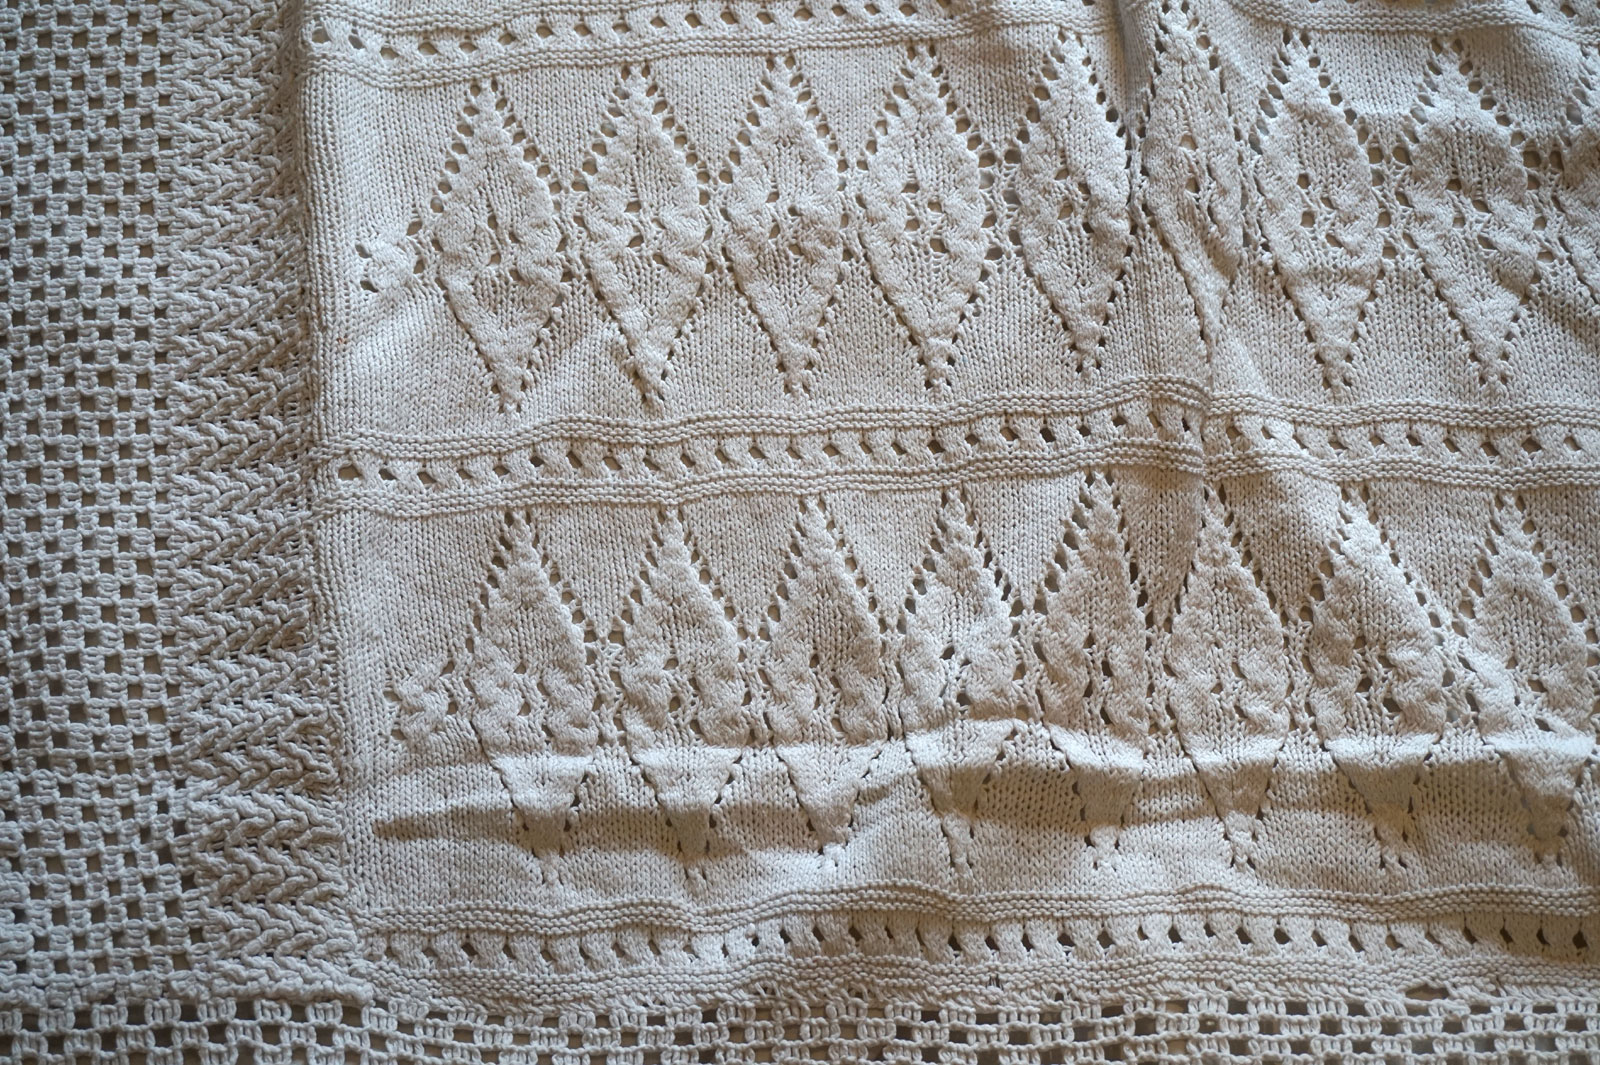 Antique Quilt Bedspread Crochet Bed Cover South French France Knitted Crocheted Linens & Textiles (pre-1930) Bedspreads & Coverlets